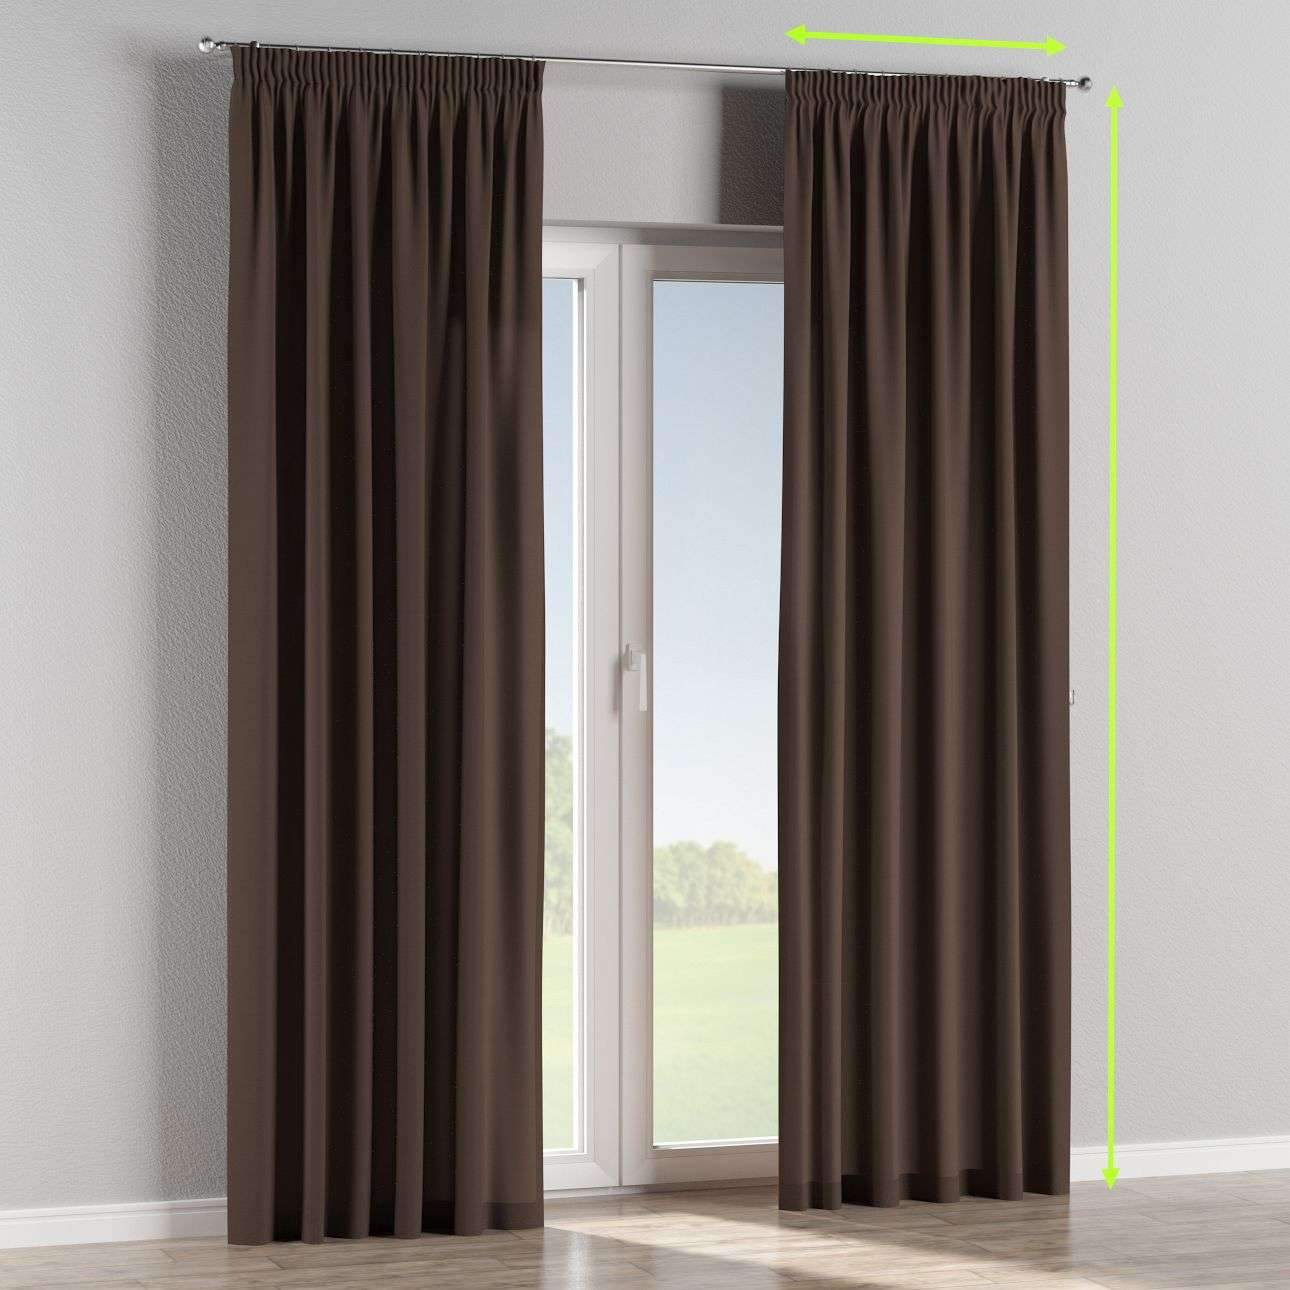 Pencil pleat lined curtains in collection Cotton Panama, fabric: 702-03